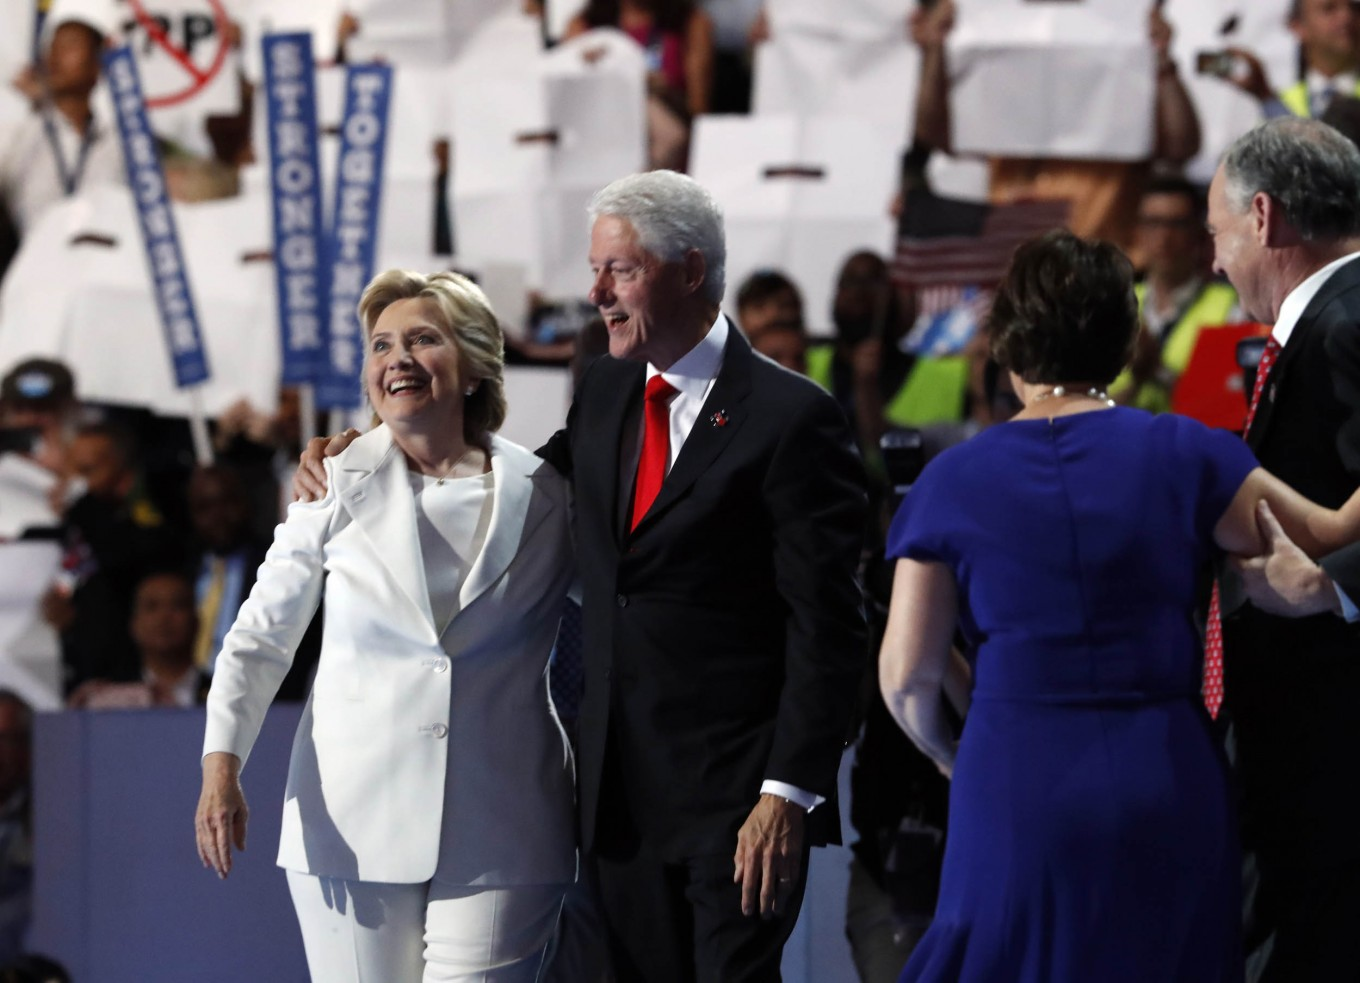 Amid UK-US leaks row, cables reveal tensions under Clinton